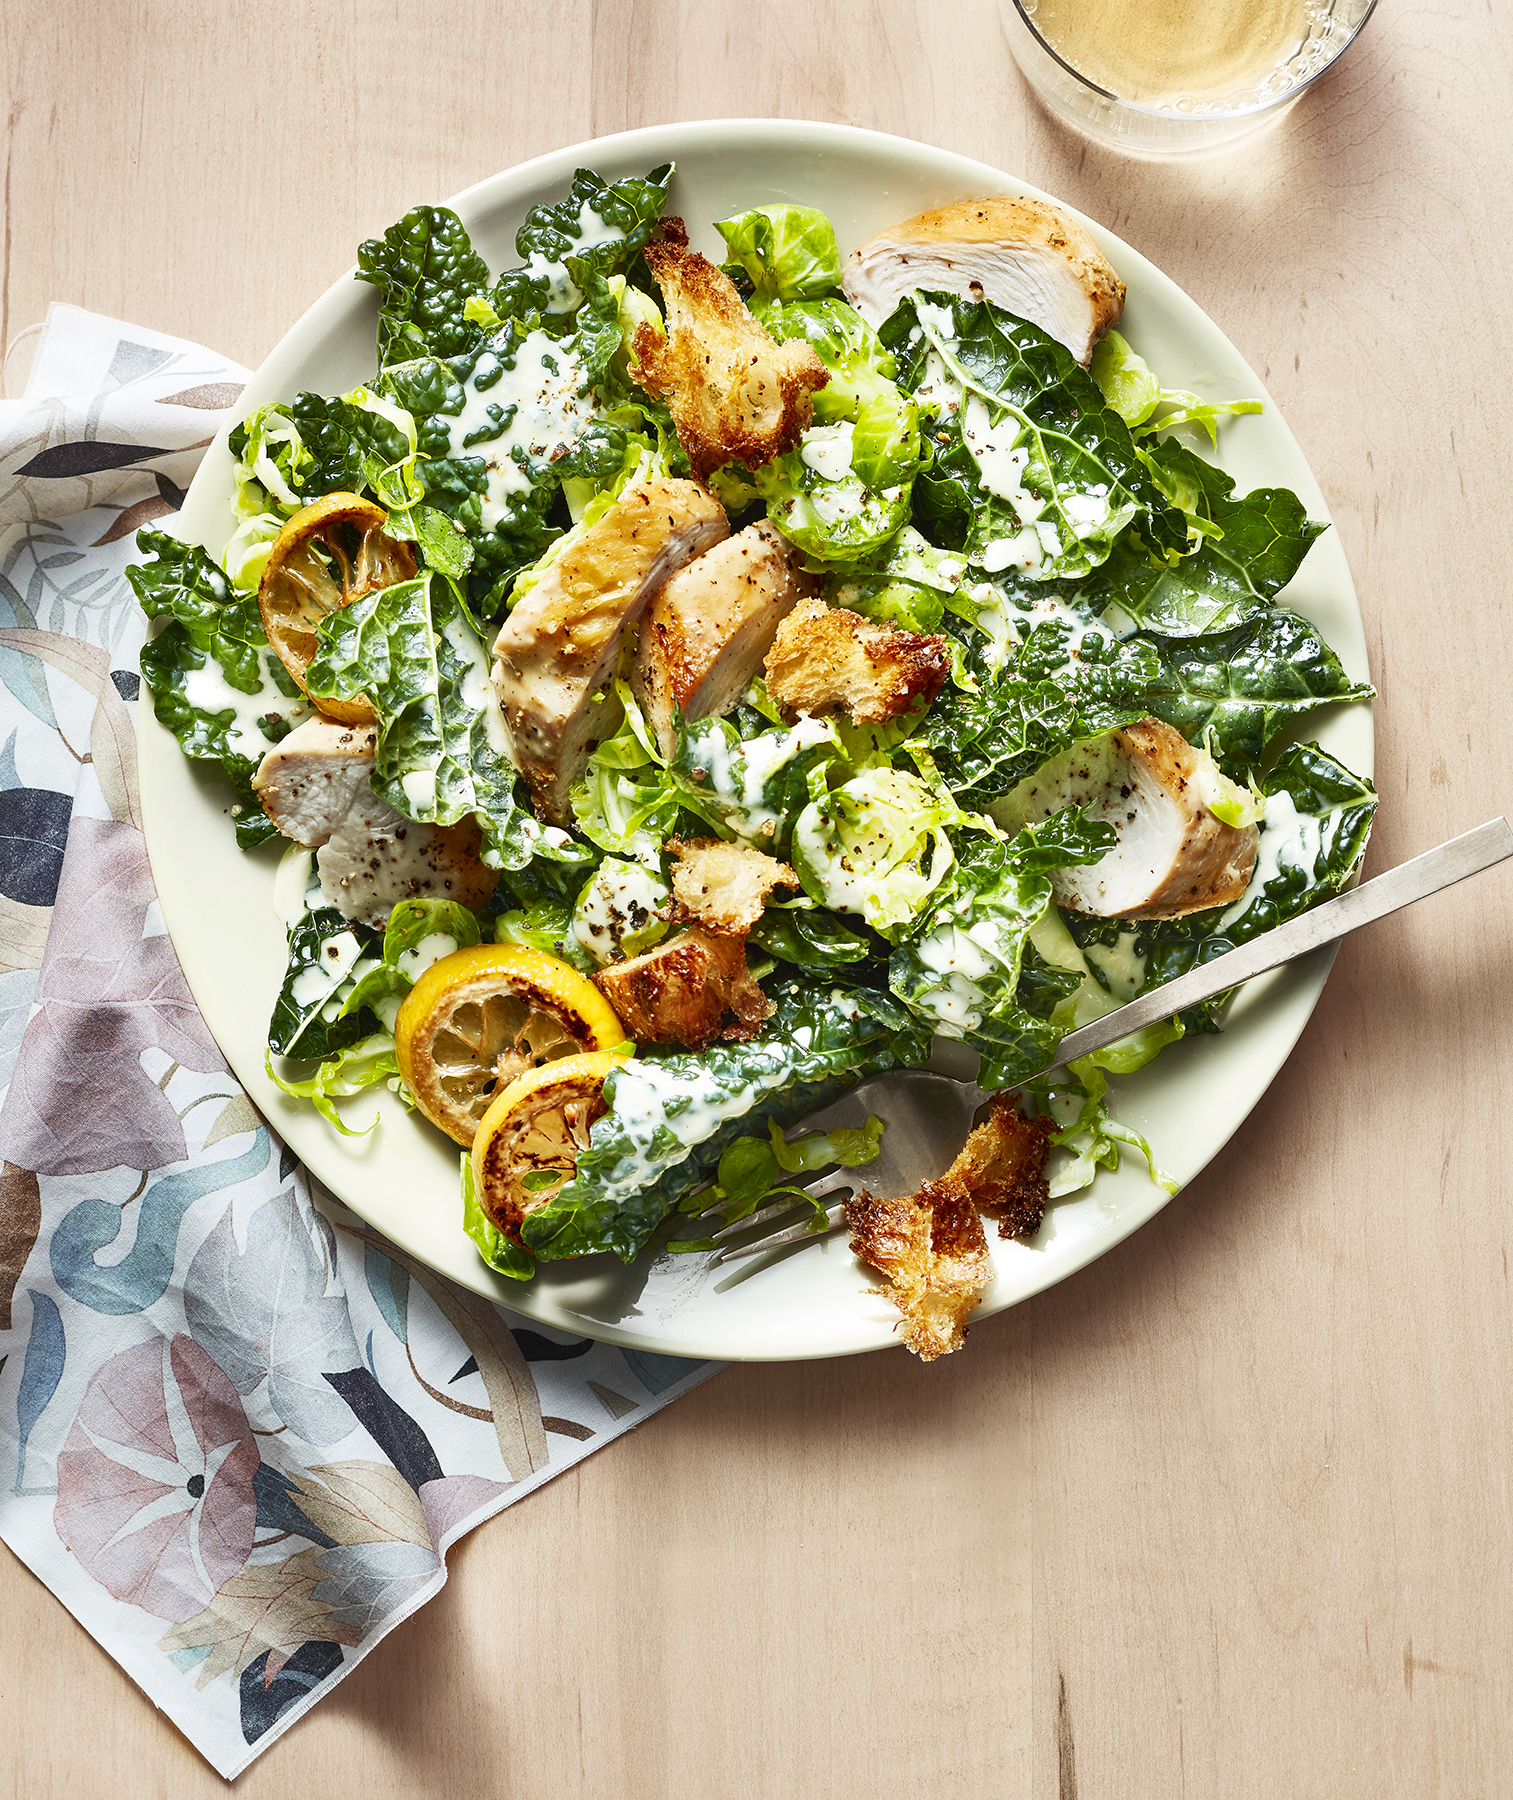 Shaved Brussels Sprouts and Kale Salad With Creamy Tahini Dressing